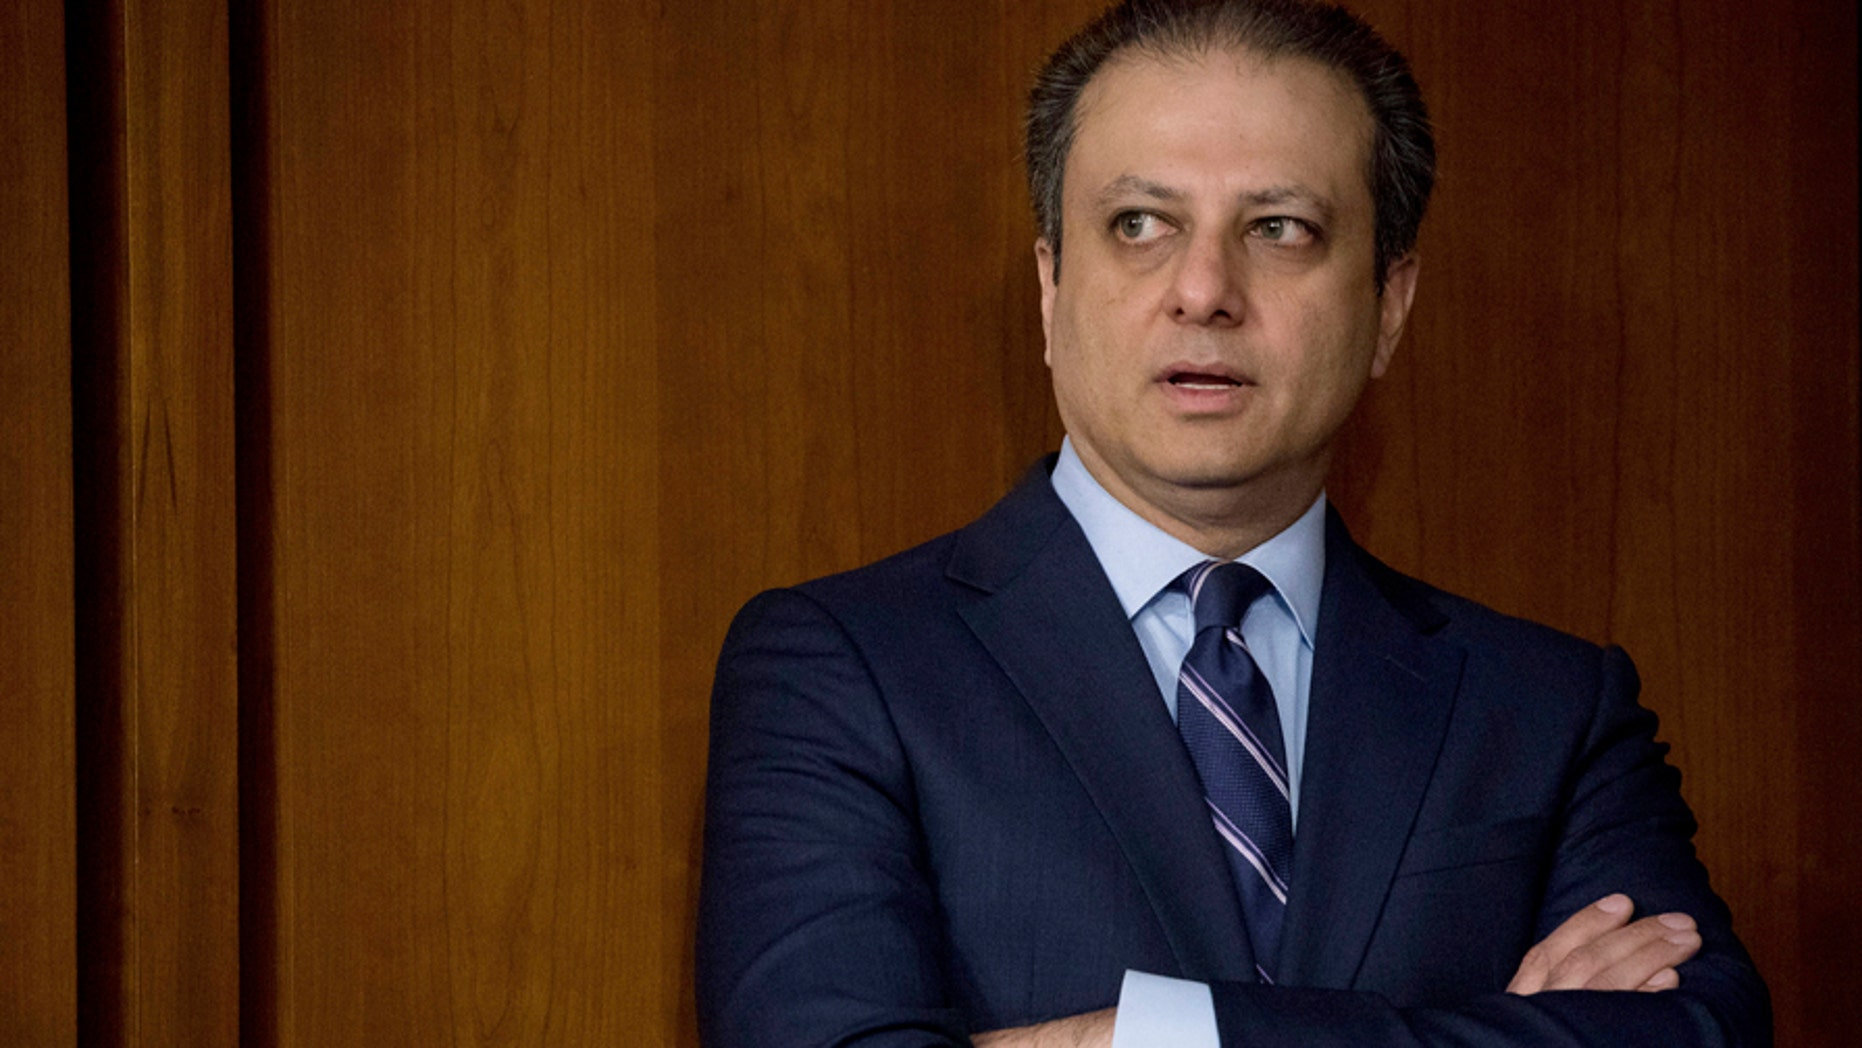 Former United States Attorney for the Southern District of New York Preet Bharara arrives before former FBI director James Comey testifies at a Senate Intelligence Committee hearing on Capitol Hill in Washington, June 8, 2017.